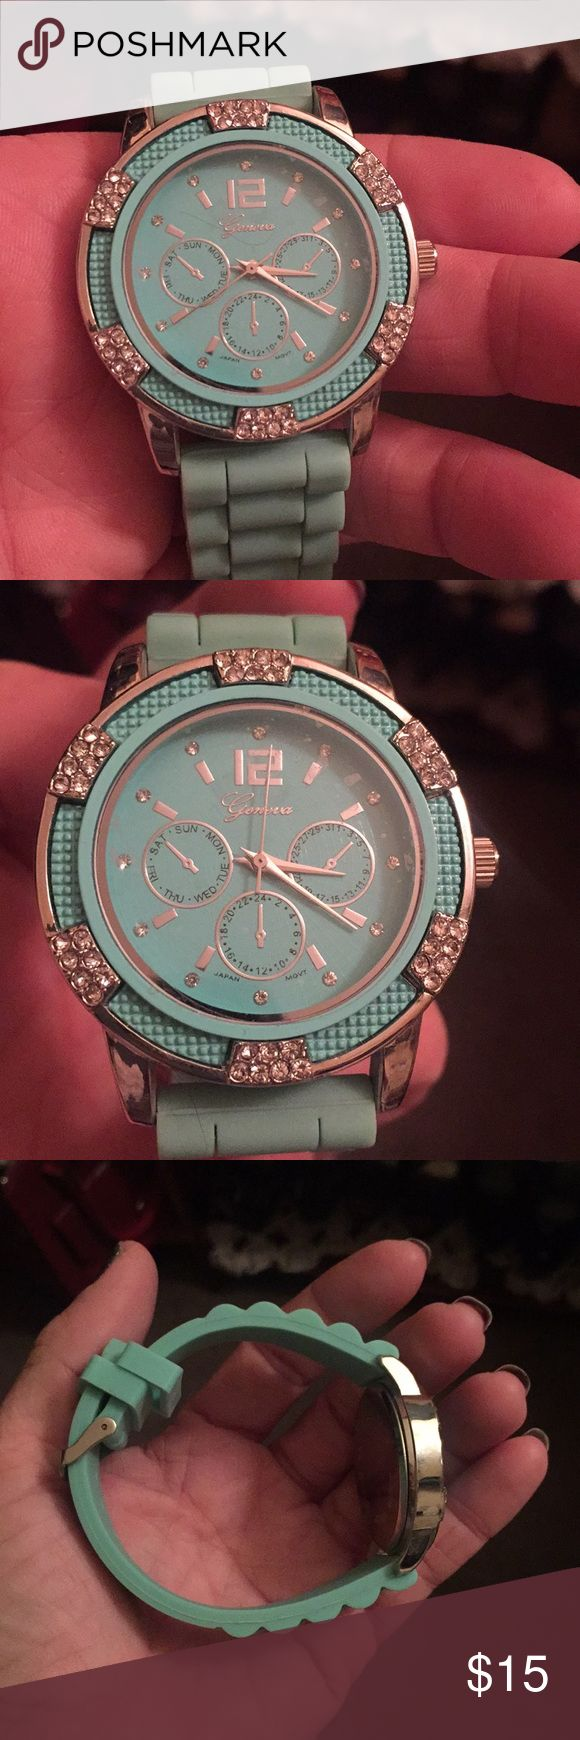 Geneva women's watch Adorable and easy teal Geneva watch with gem detail brand new battery glass protector still on watch face brand new never worn Geneva Accessories Watches